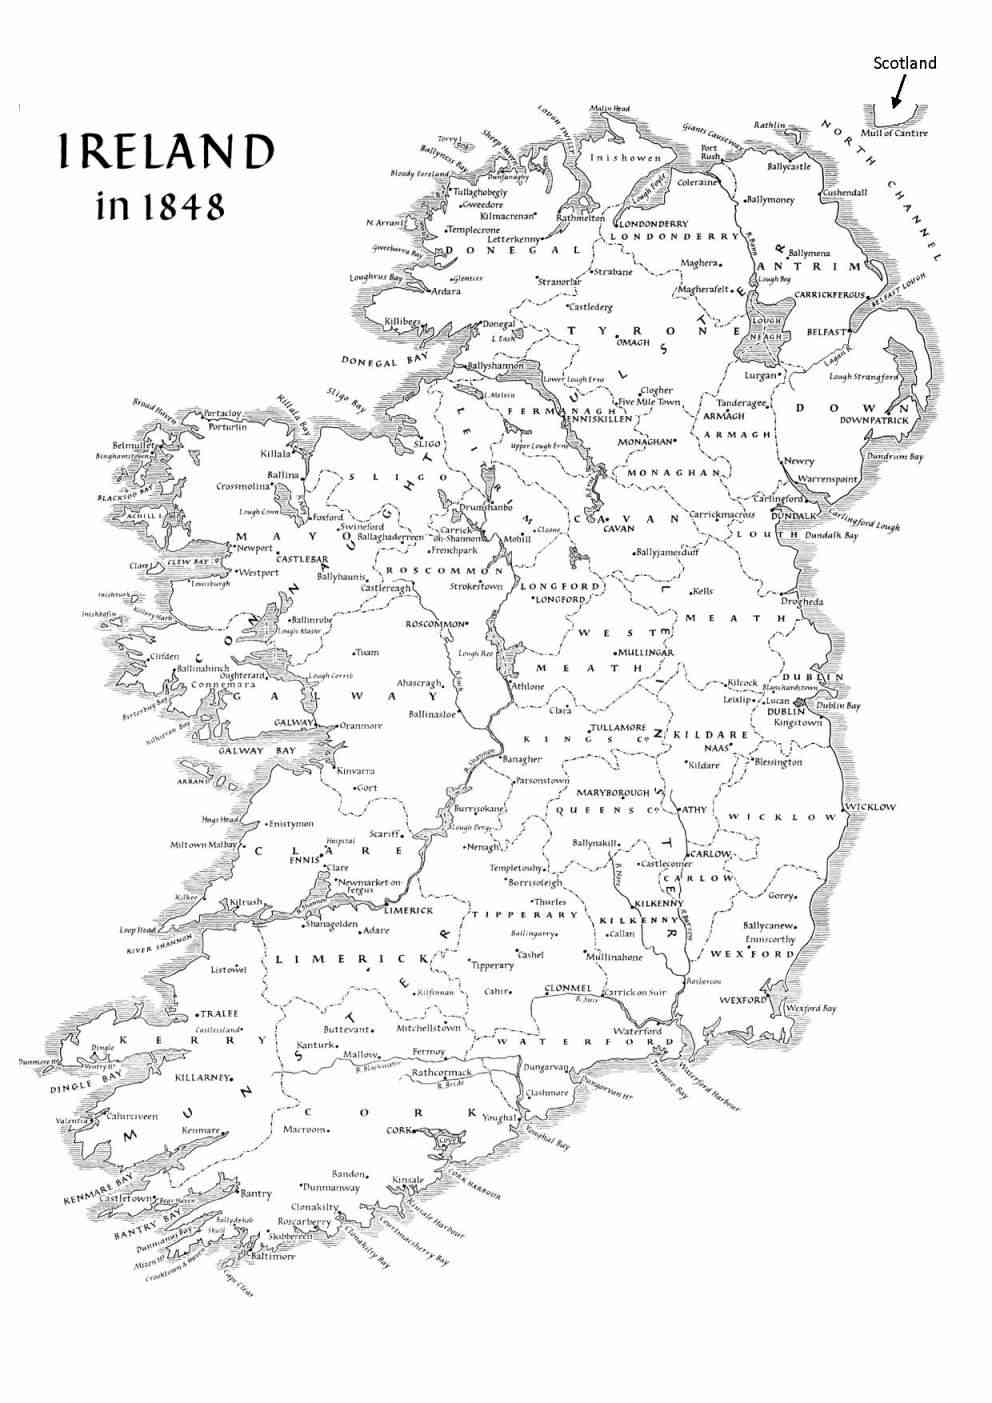 Islands Of Ireland Map.Ireland Geography Basic Facts About The Island